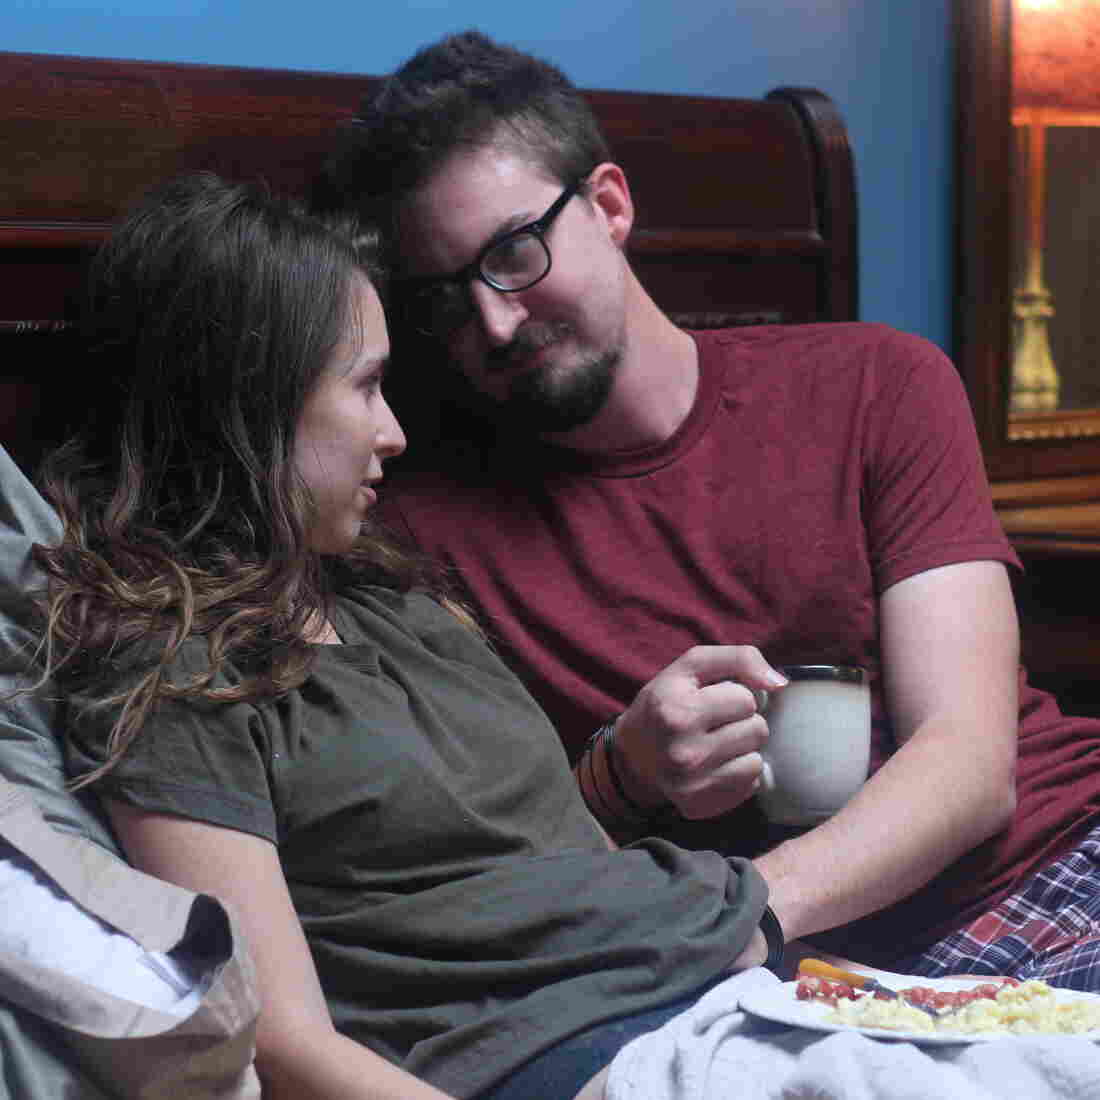 '24 Exposures': A Would-Be Erotic Thriller, Without Focus